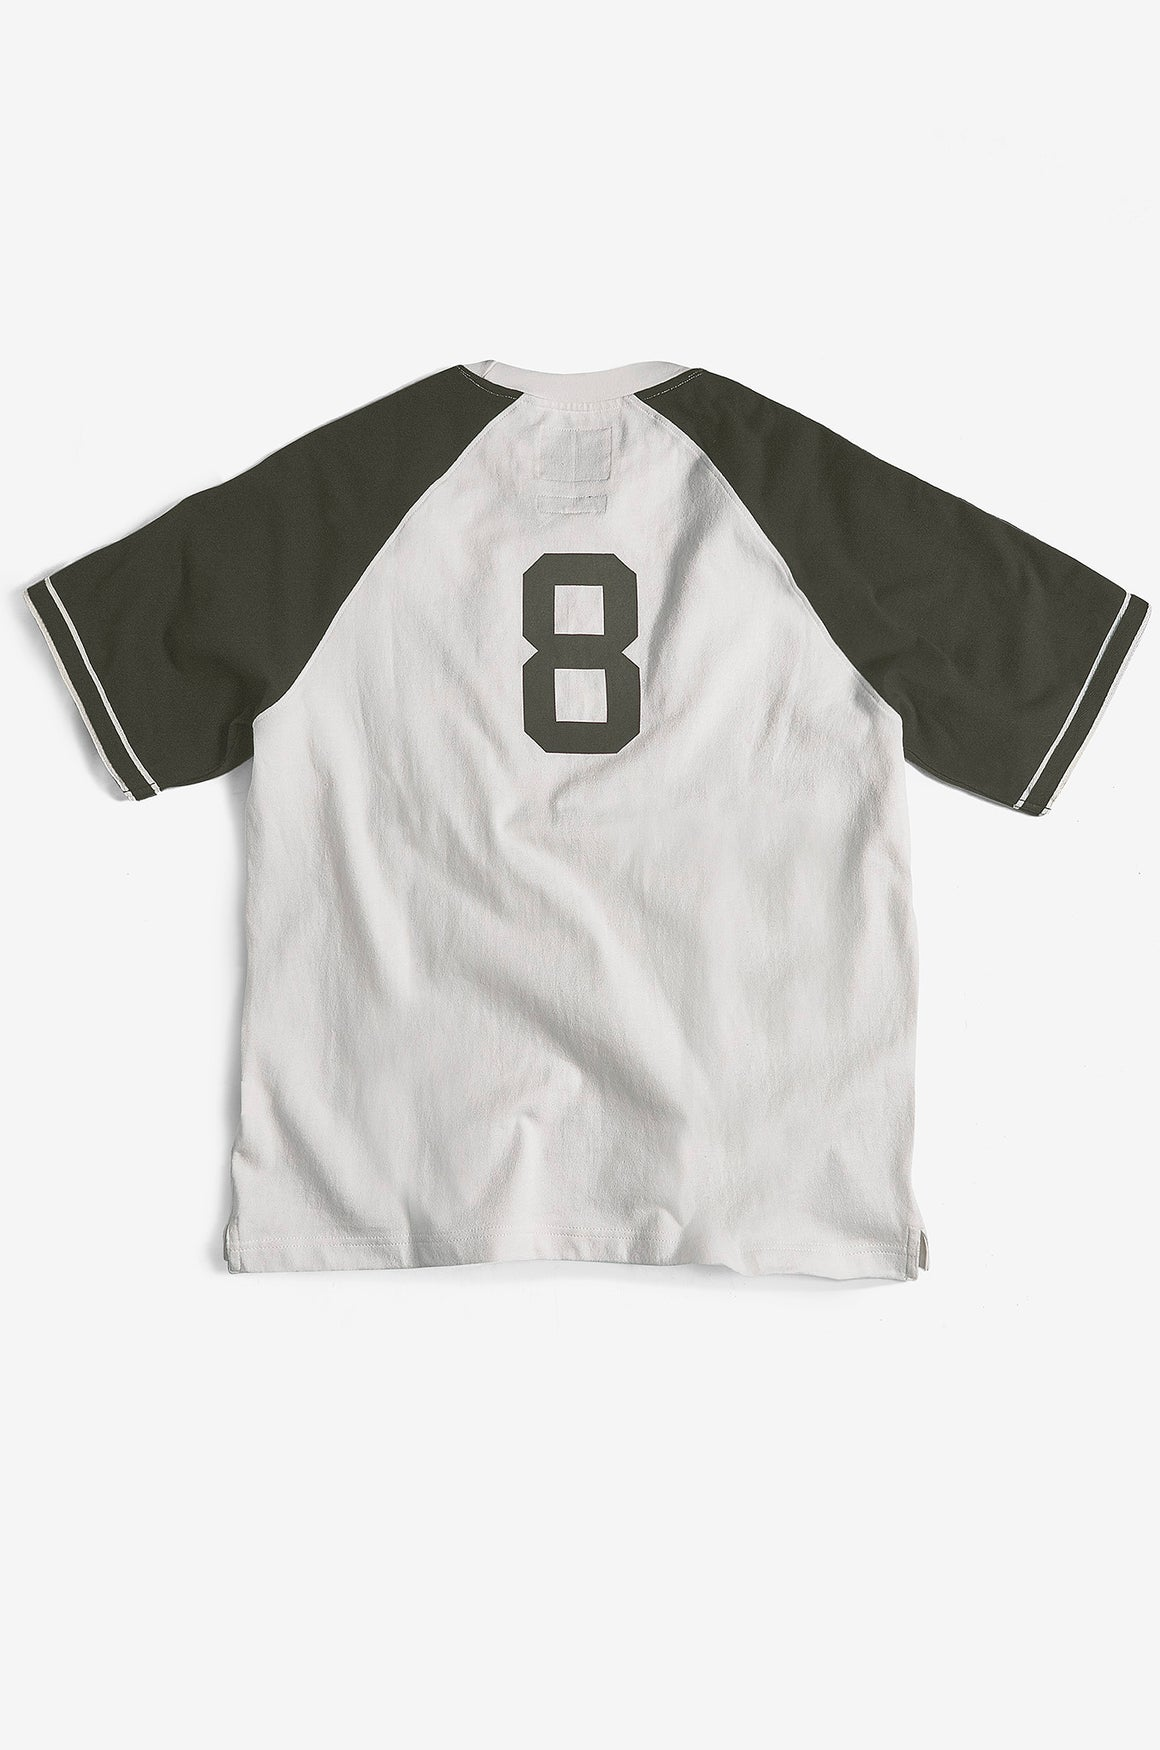 Heavy Jersey Baseball Tee | Ecru / Dark Olive – issue #RE0515